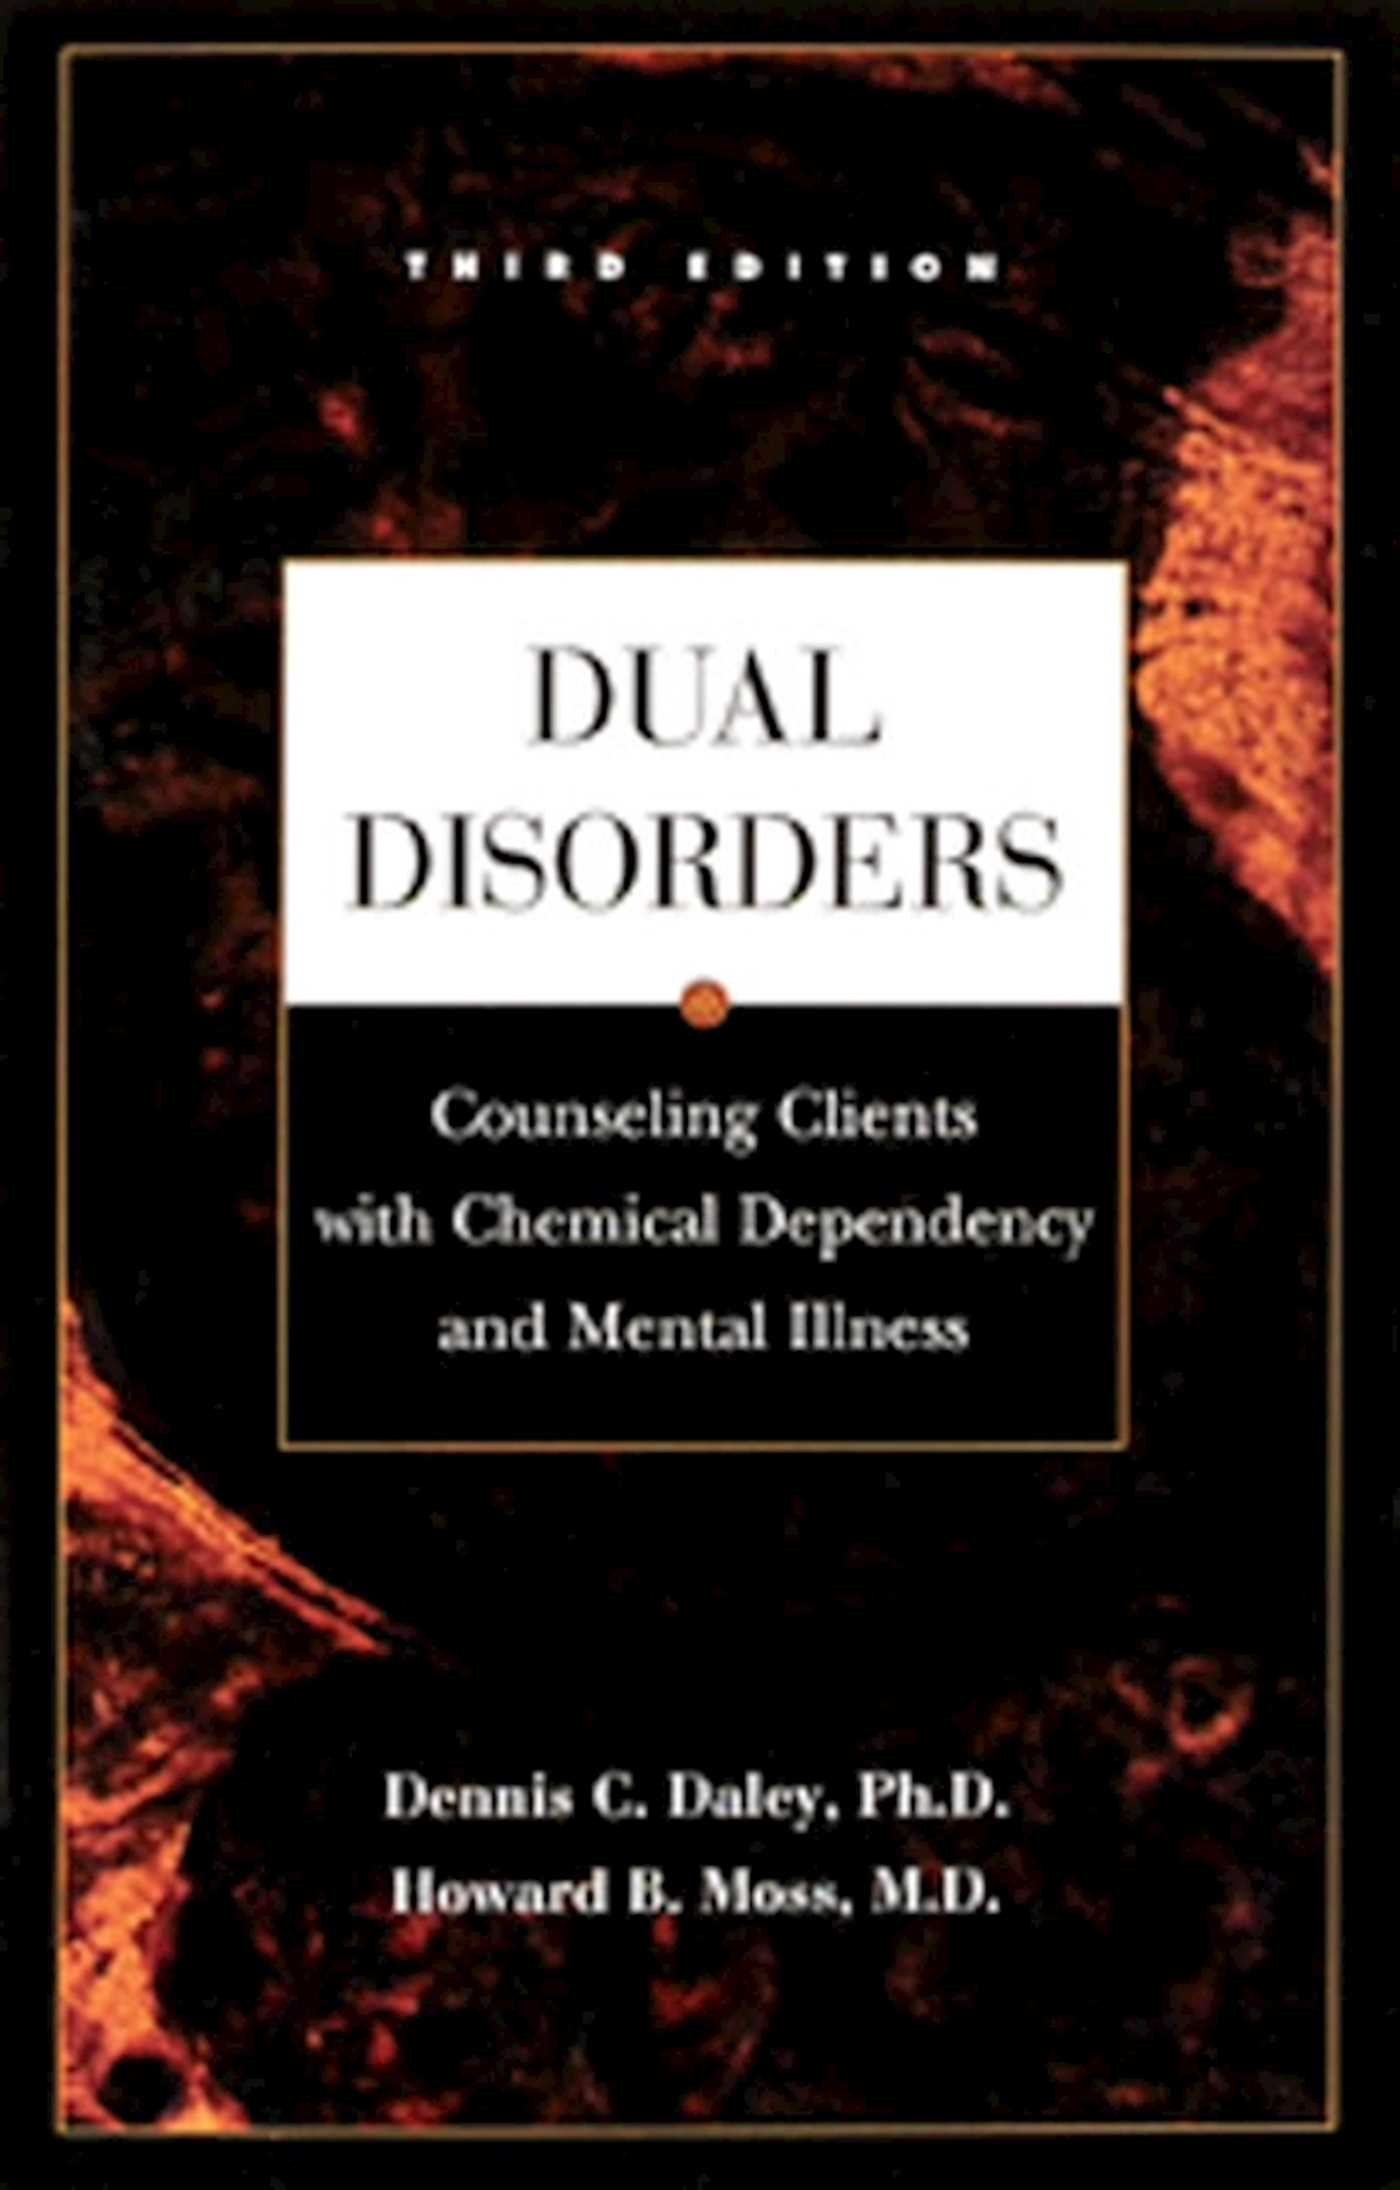 Dual Disorders Counseling Clients With Chemical Dependency And